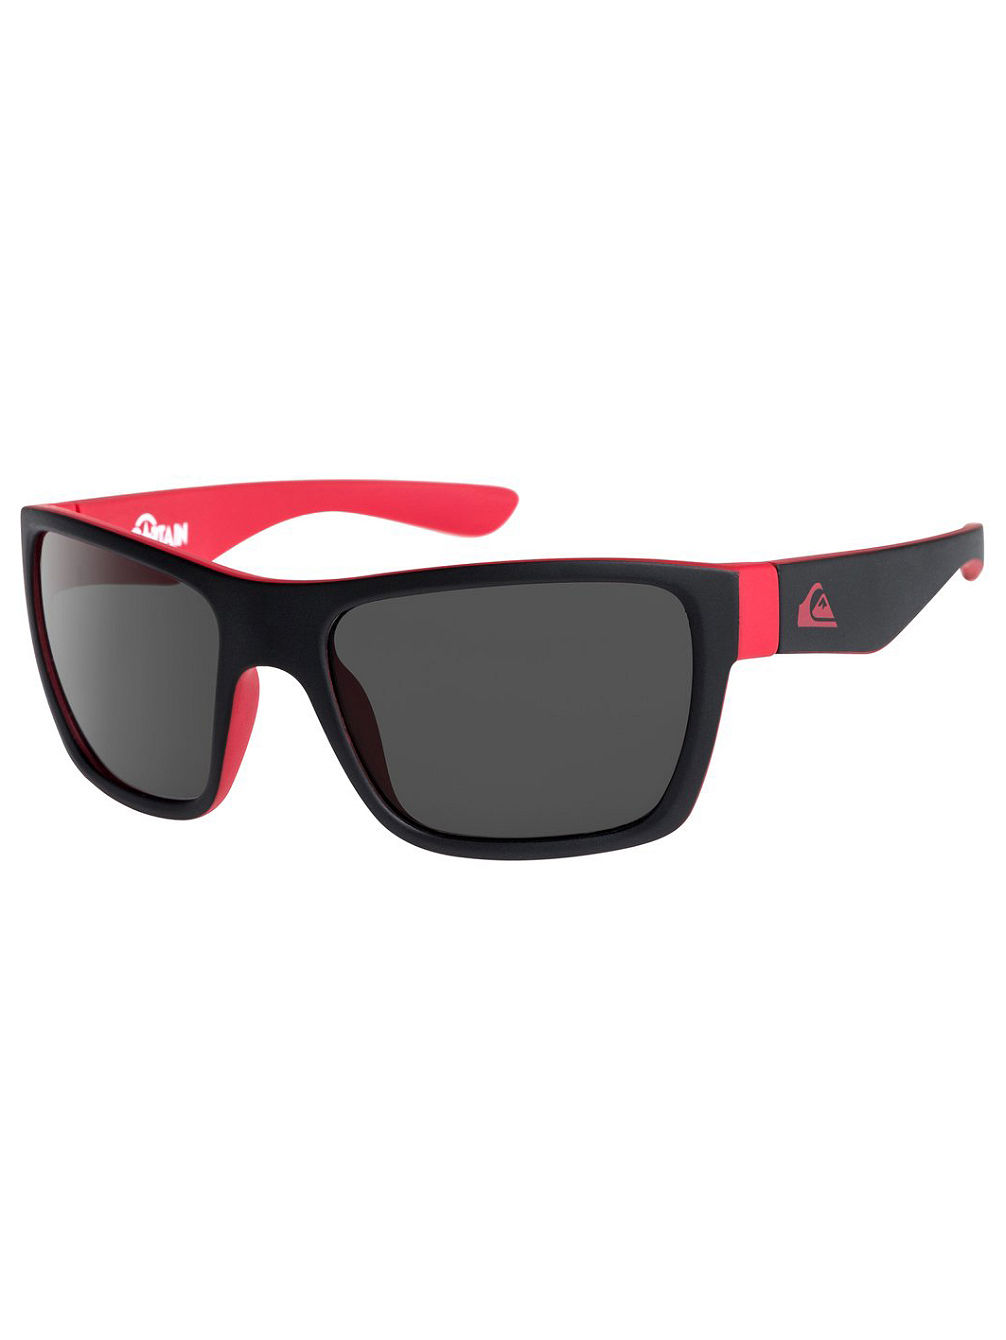 Captain Matte Black Red Youth